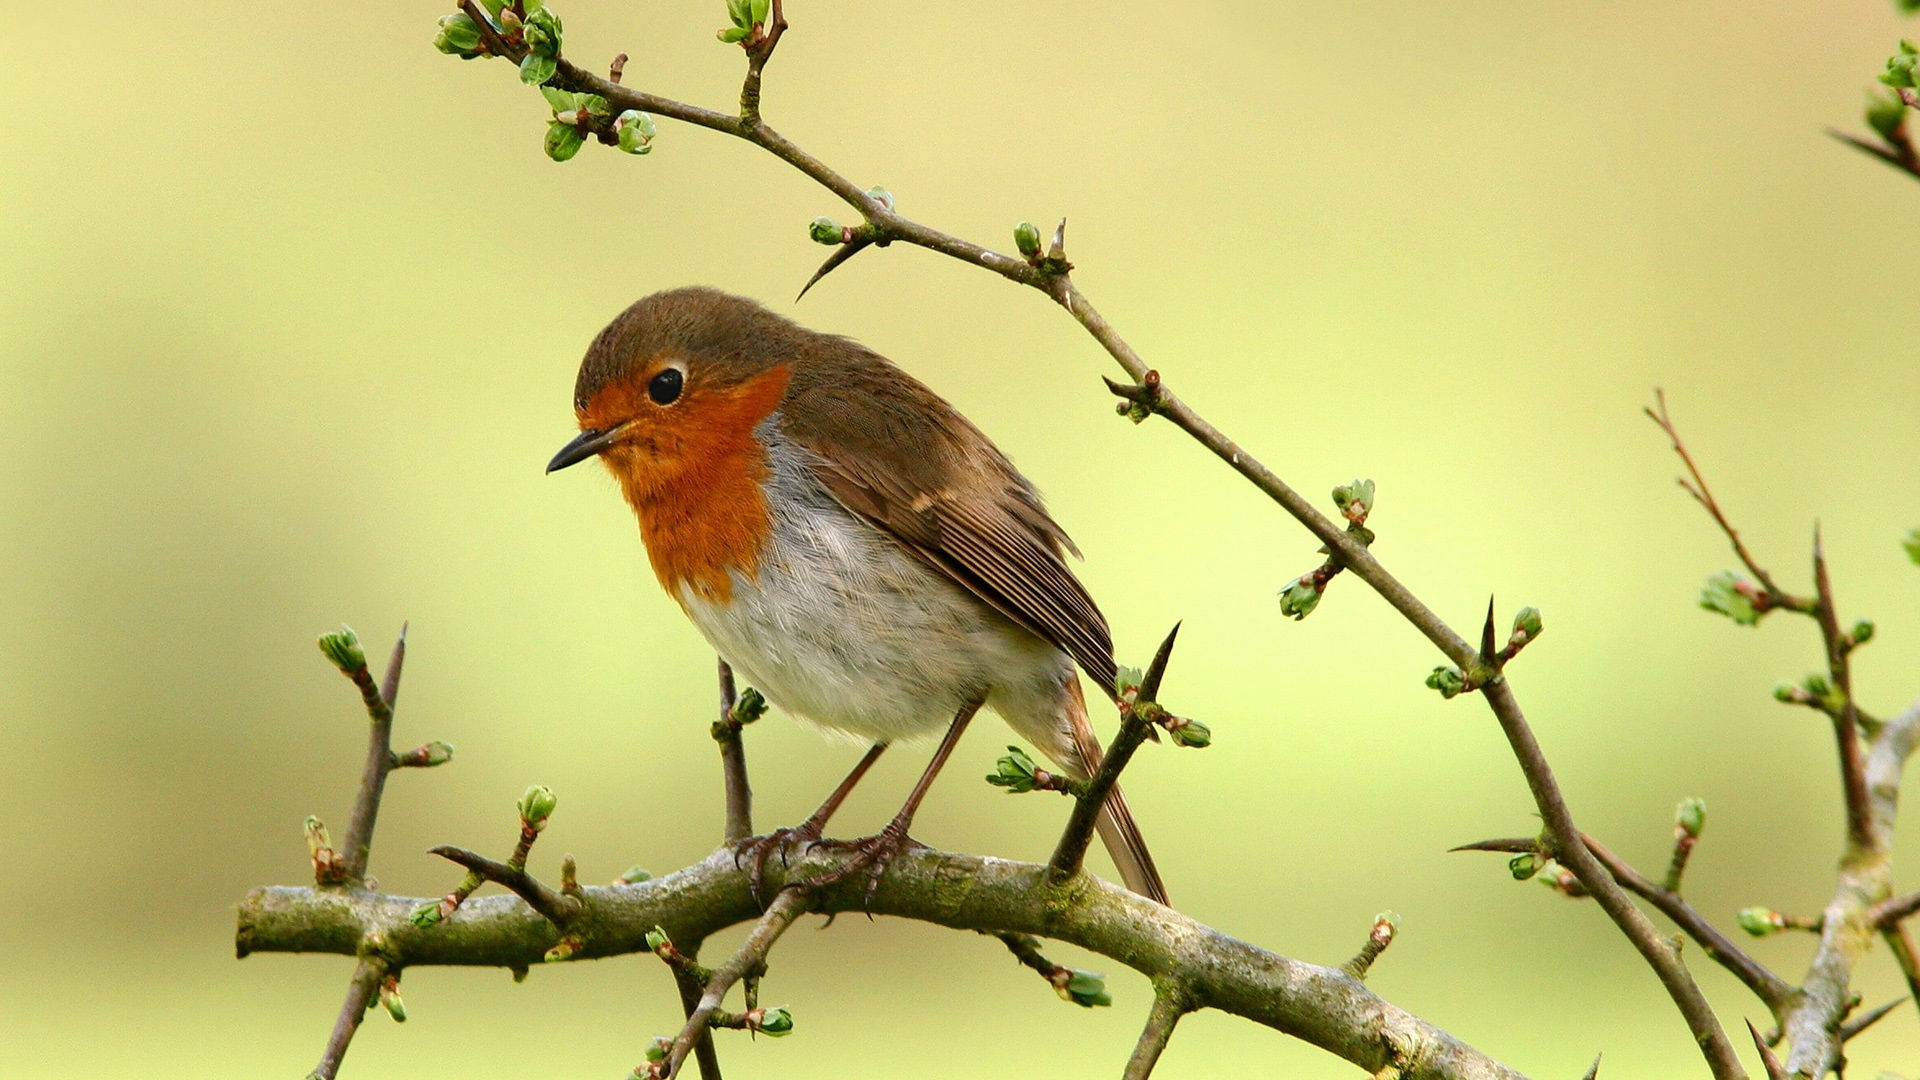 robin bird desktop wallpaper 49388 1920x1080px